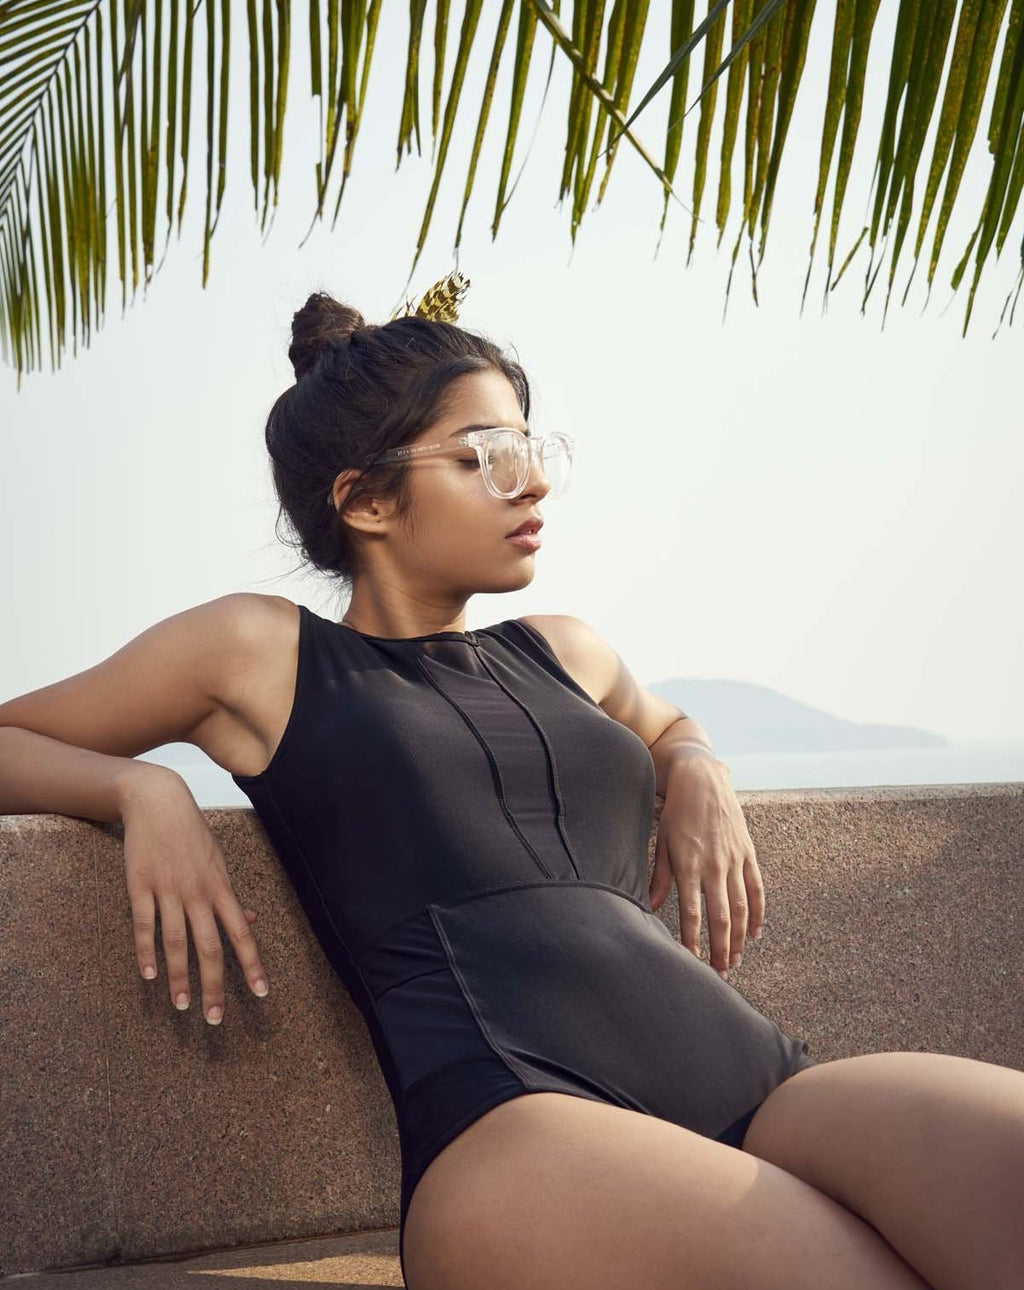 Alex Mesh Swimsuit